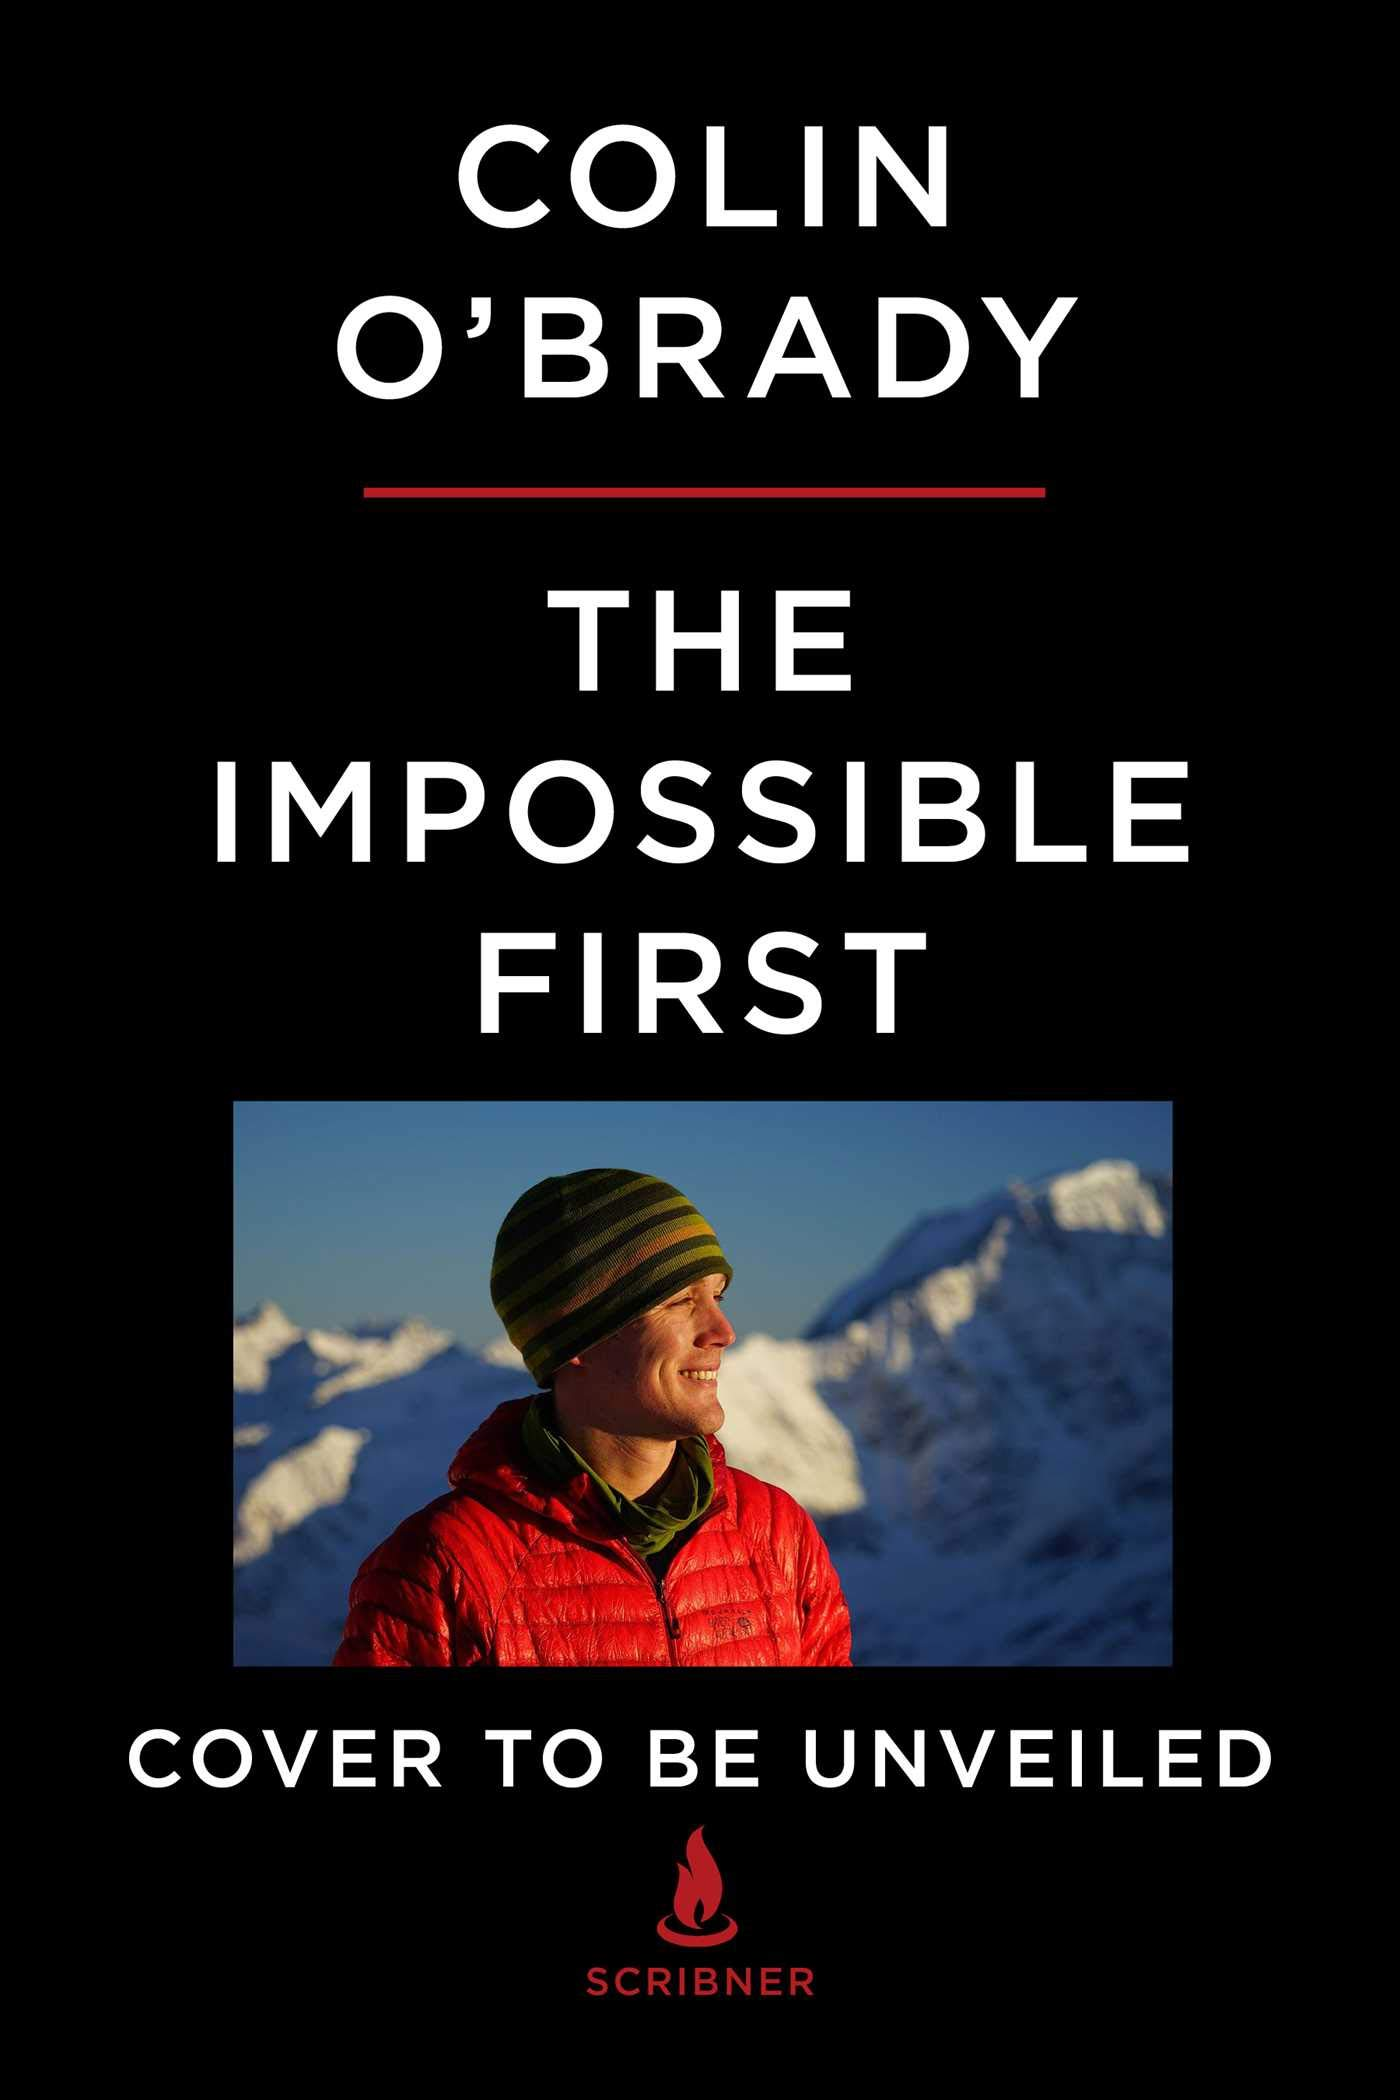 The Impossible First: From Fire to Ice_Crossing Antarctica Alone by Scribner